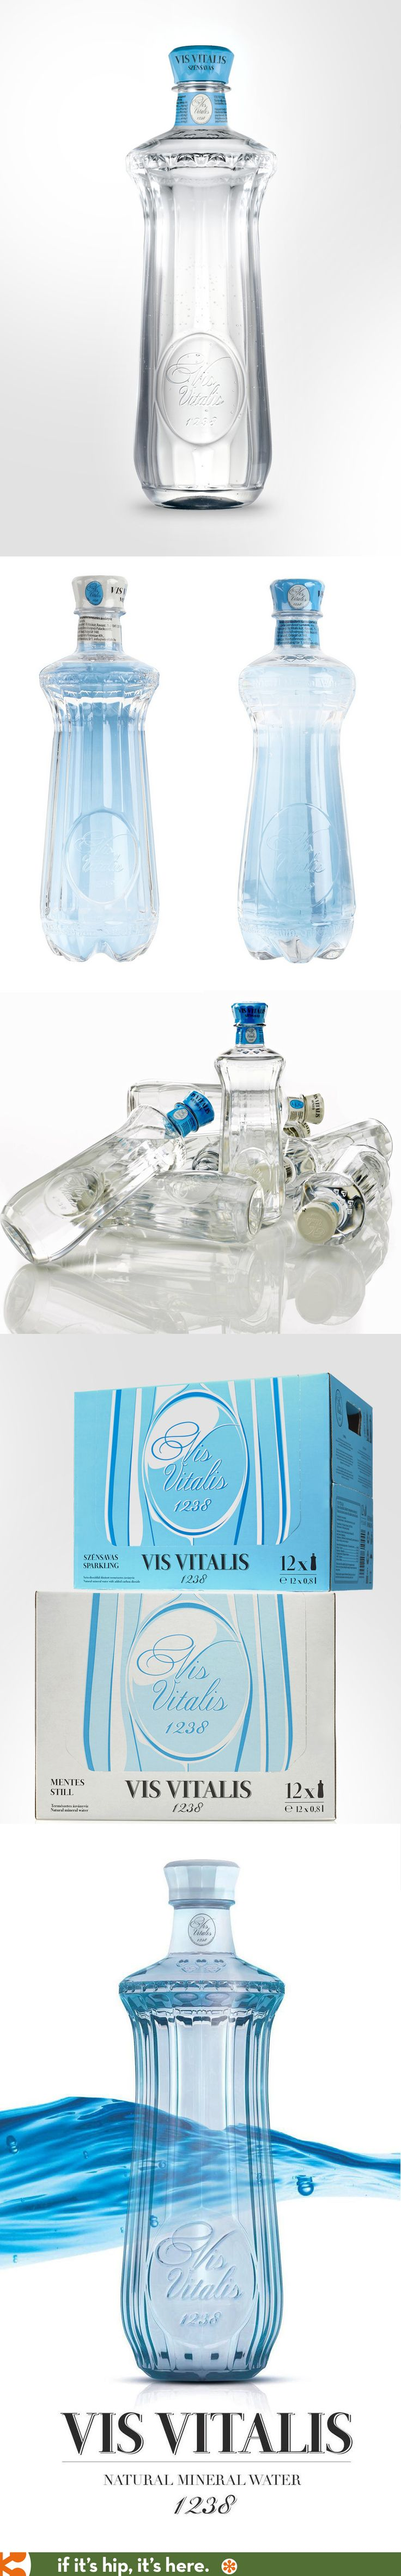 Hungary's Vis Vitalis Sparkling and Still bottled waters.